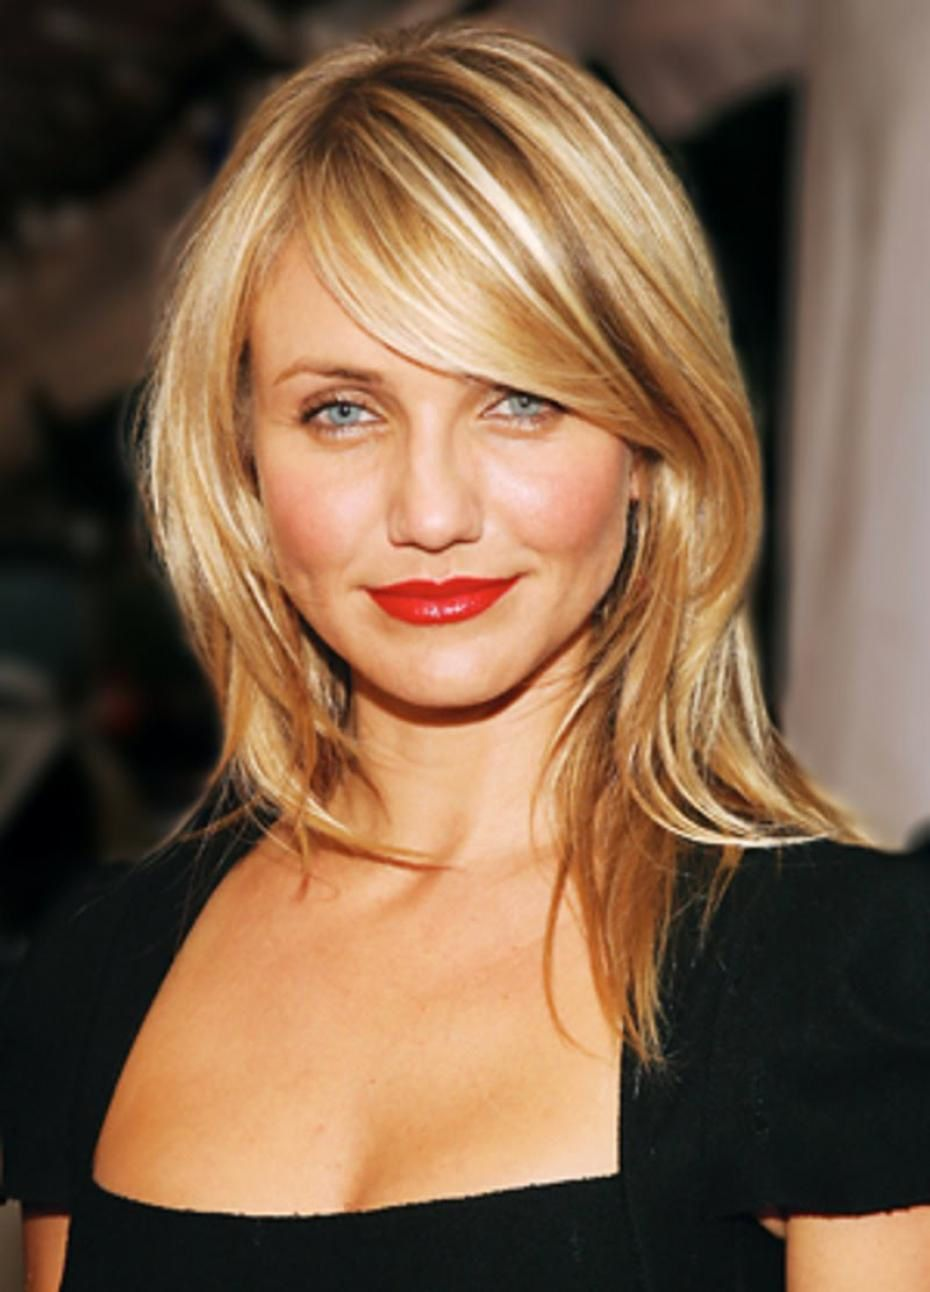 source: http://www.meltycampus.fr  Cameron Diaz